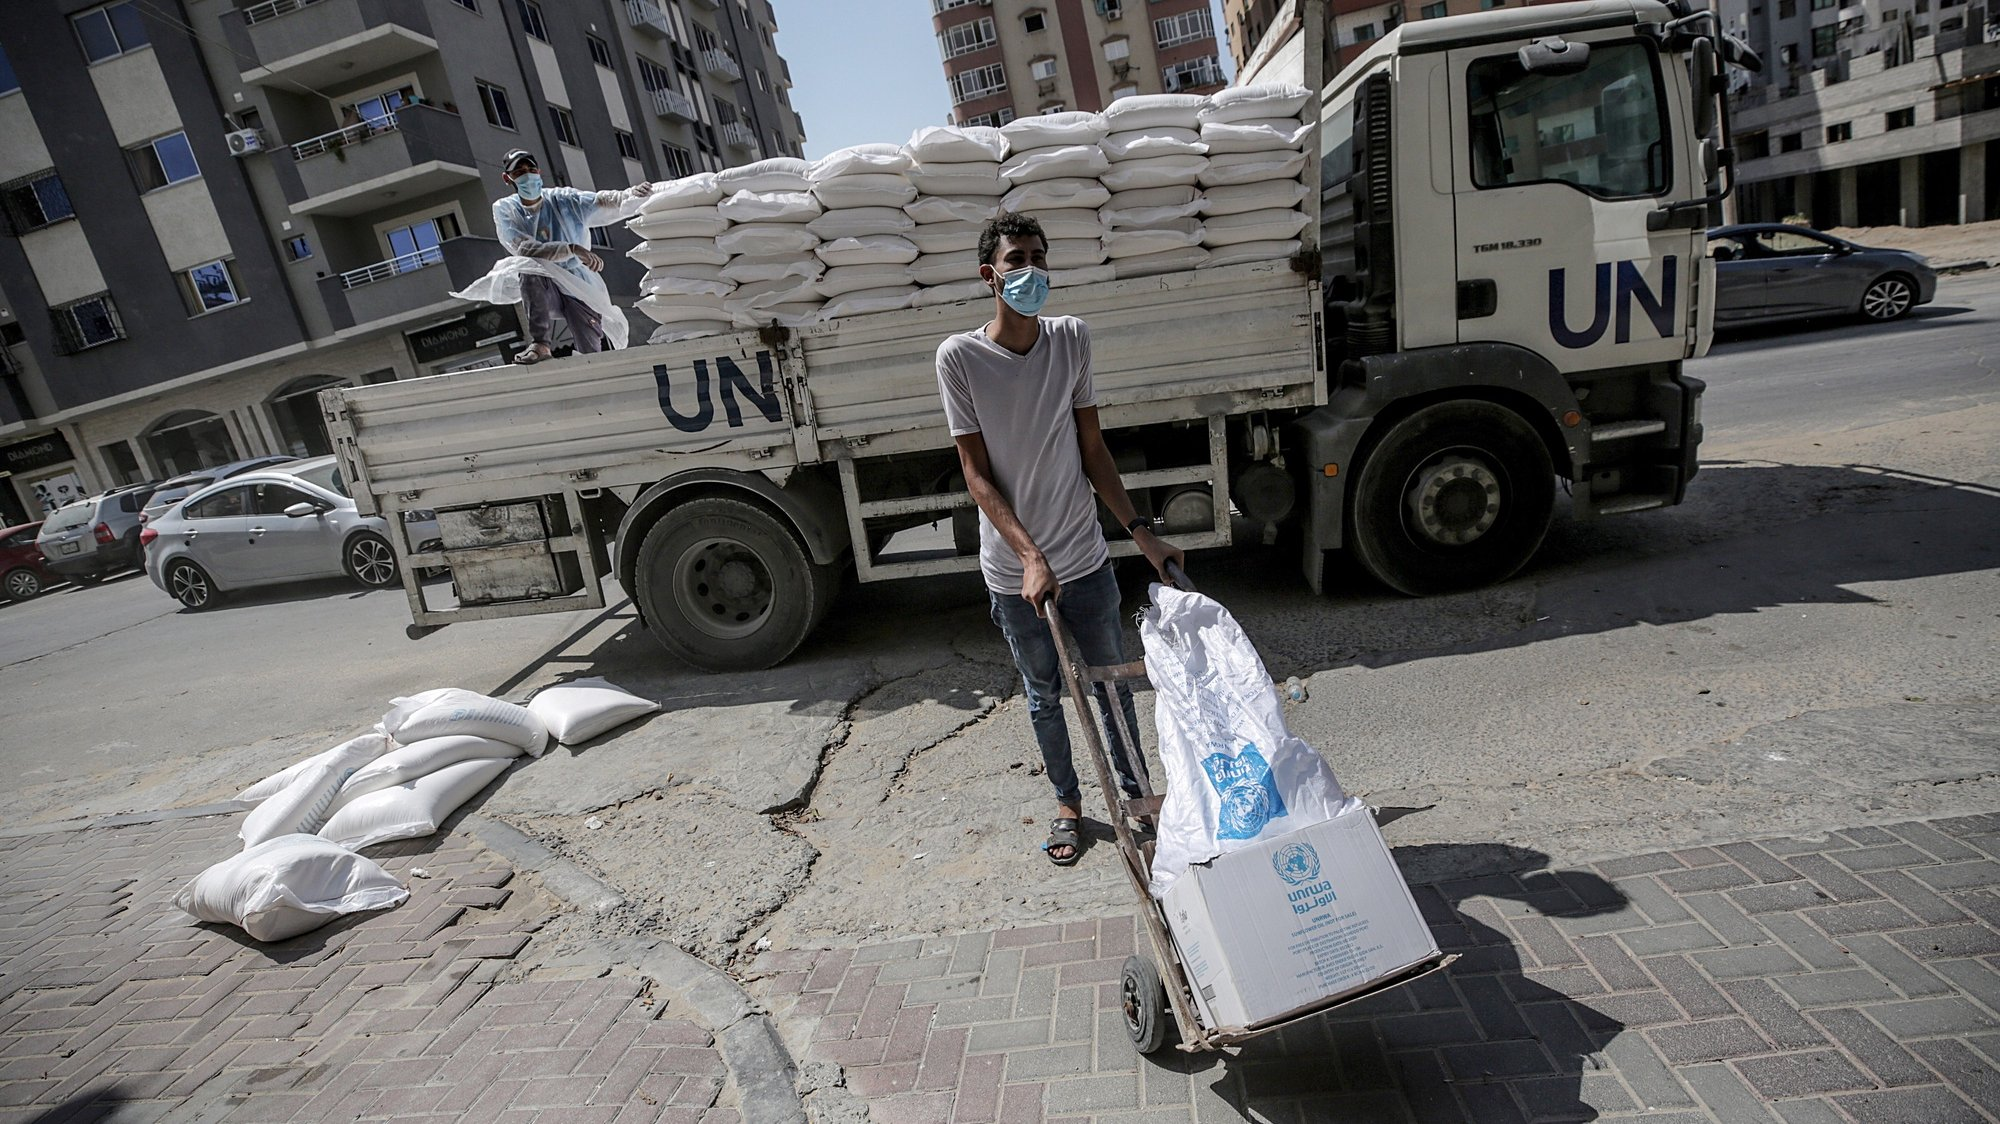 epa08670653 Palestinian workers at the United Nation Relief and Works Agency (UNRWA) wearing protective masks distribute food aid rations for refugee families, in Gaza City, 15 September 2020. UNRWA has resumed food deliveries to thousands of refugee families in the Gaza Strip amid the ongoing coronavirus COVID-19 pandemic.The Gaza Strip is under a nationwide lockdown from 25 August.  EPA/MOHAMMED SABER